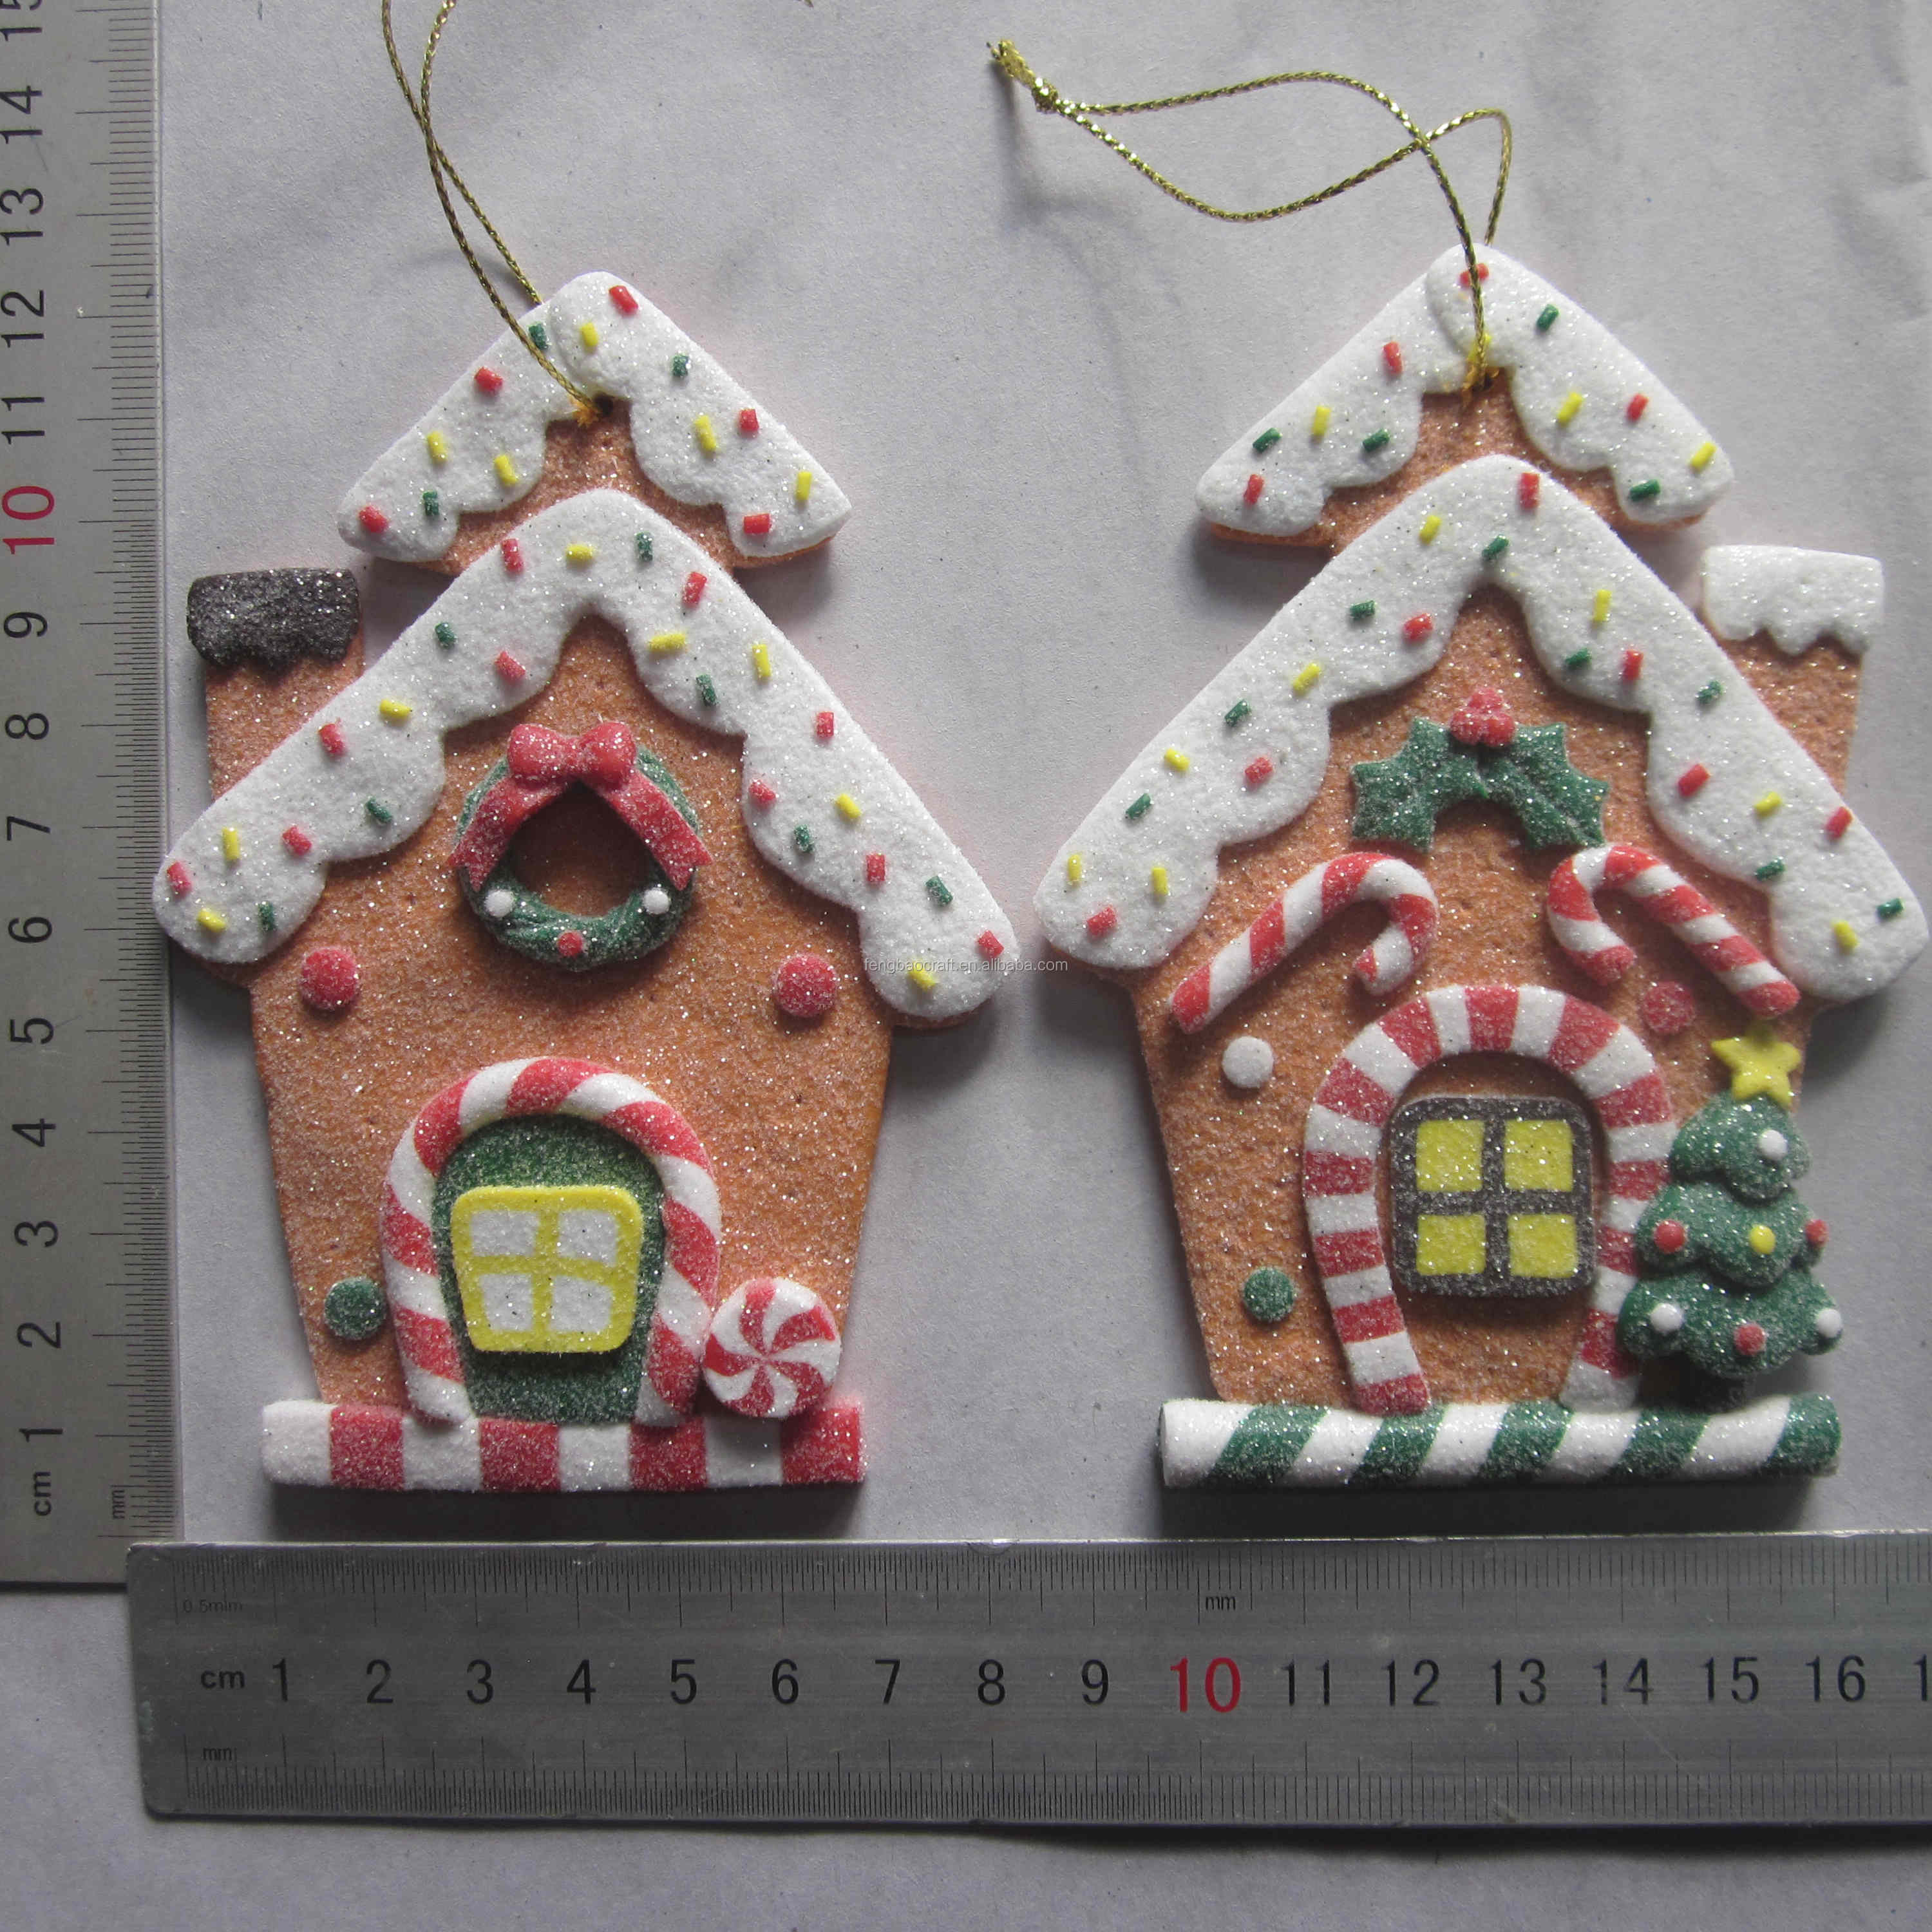 2017 Most Popular Polymer Clay Christmas Ornaments Manufactured In China Buy Polymer Clay Christmas Ornaments Polymer Clay Christmas